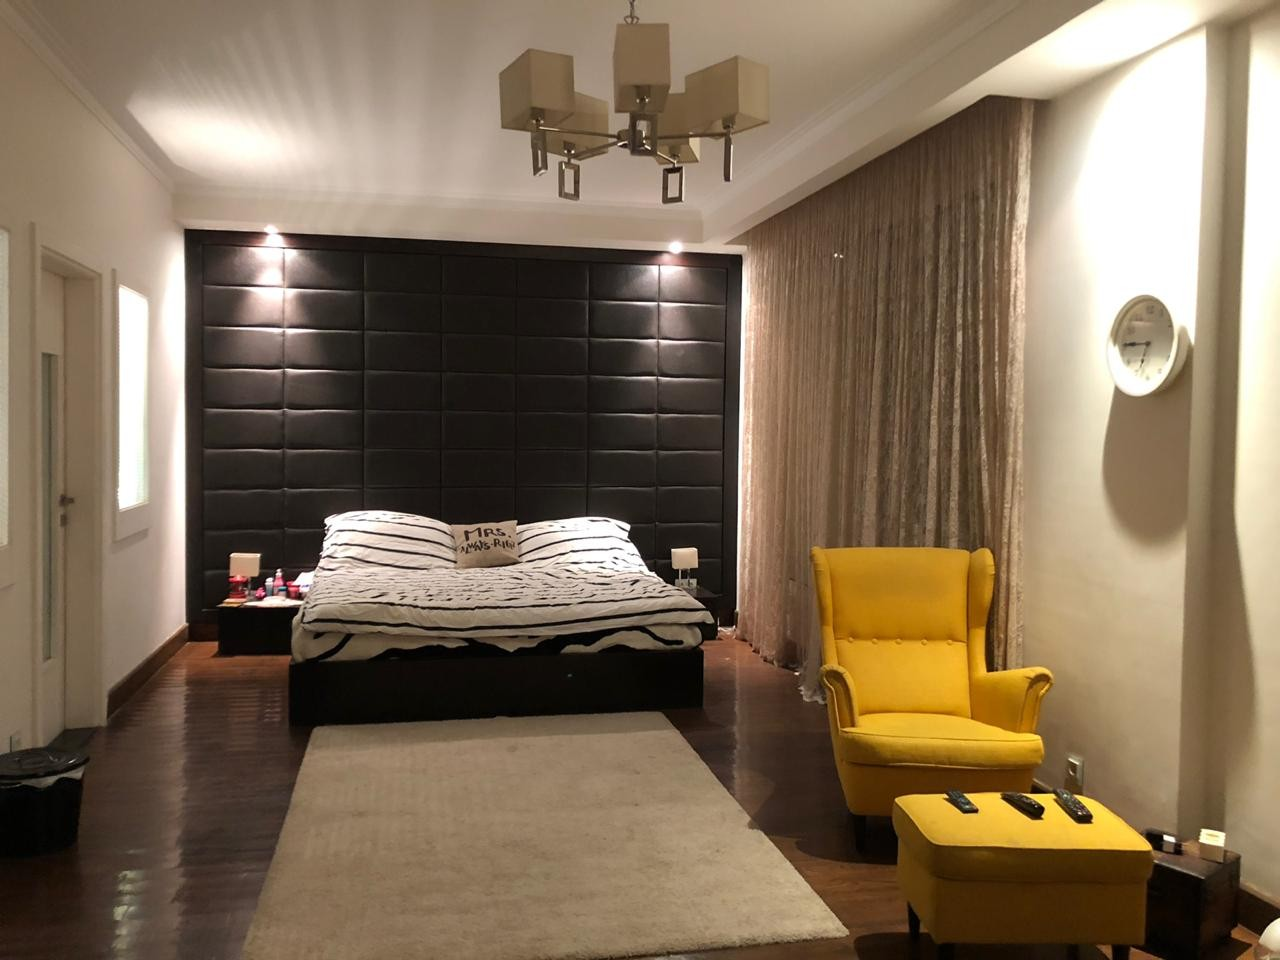 Villas For Rent In New Cairo Lake View -#2